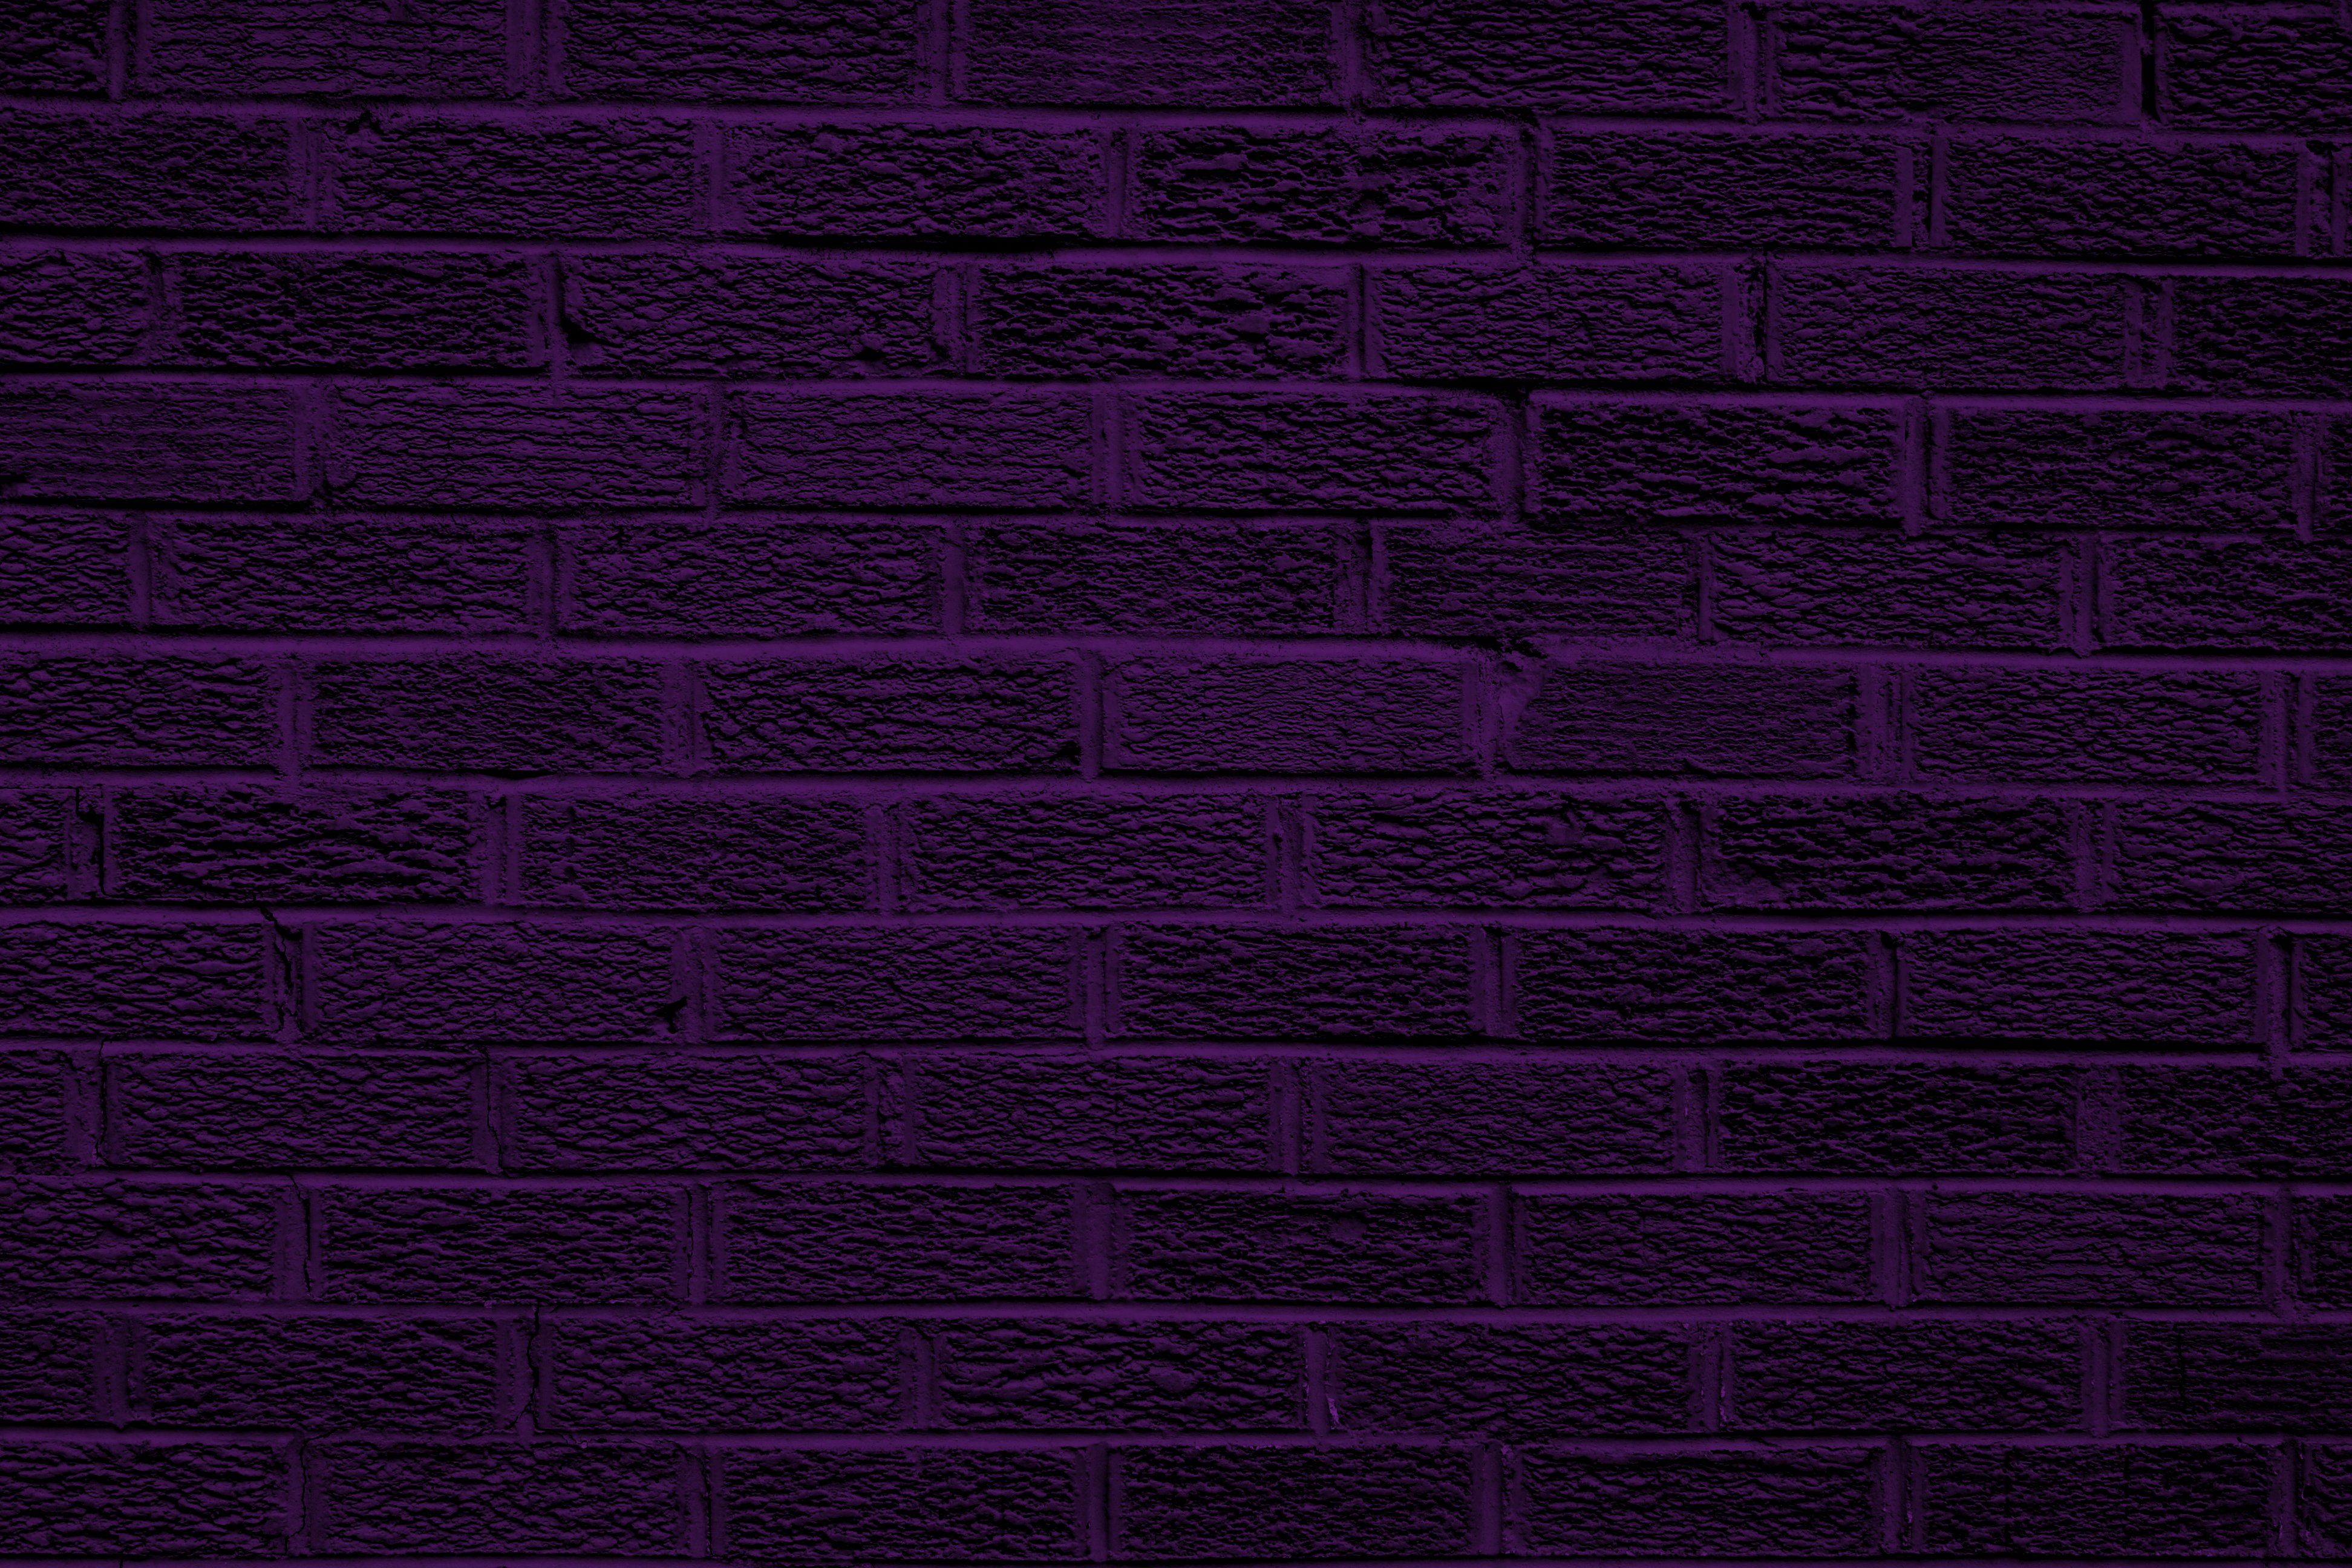 Dark Purple Pattern Background Images Pictures   Becuo 3888x2592